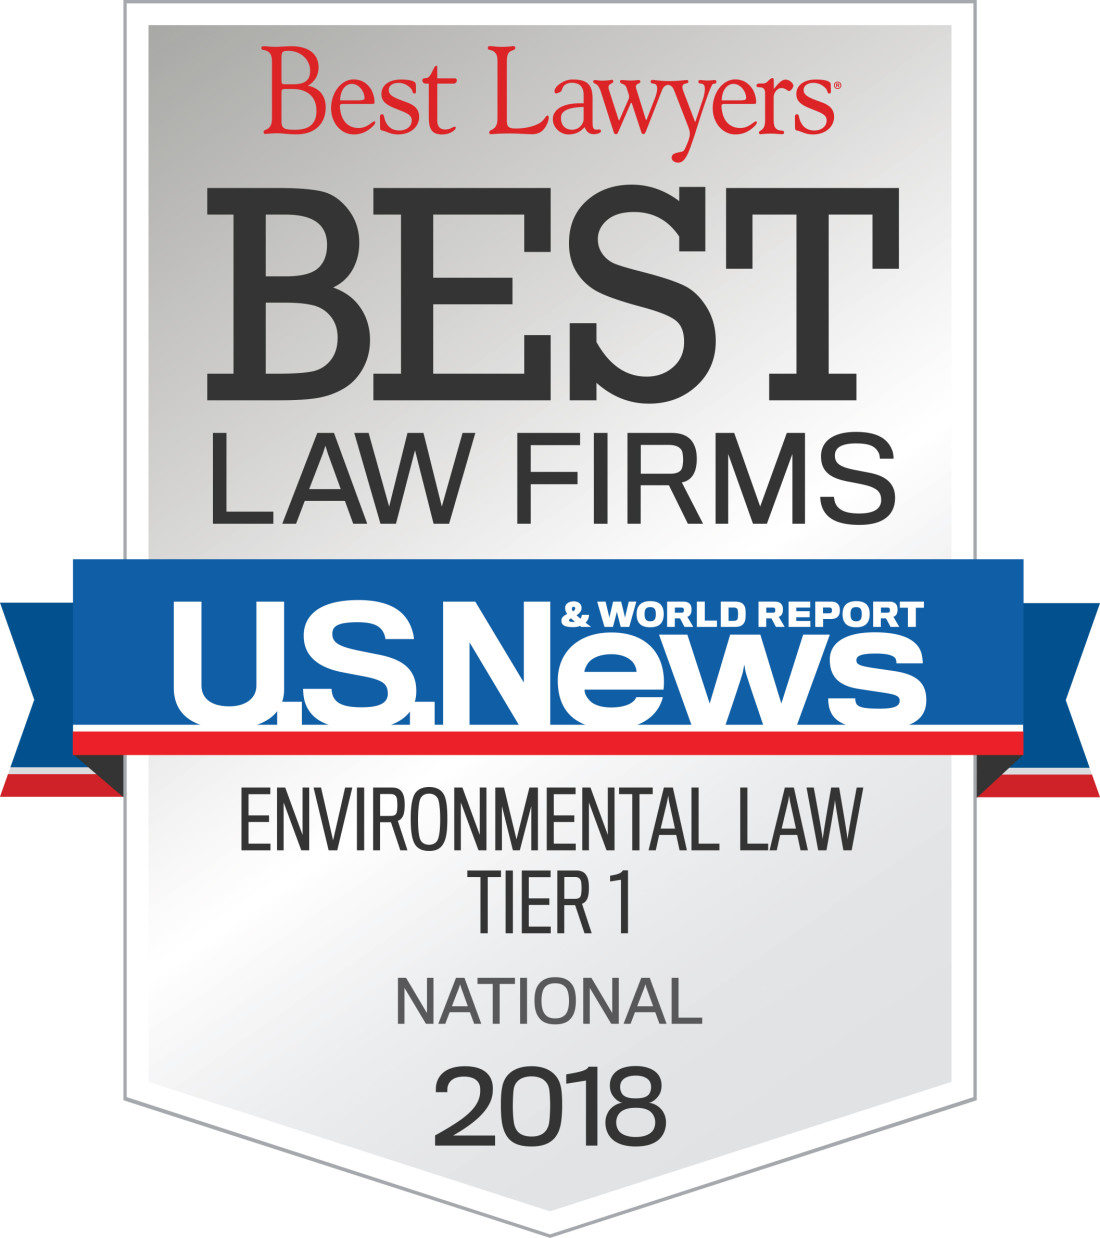 2018 Best Law Firm - Environmental Law Tier I National